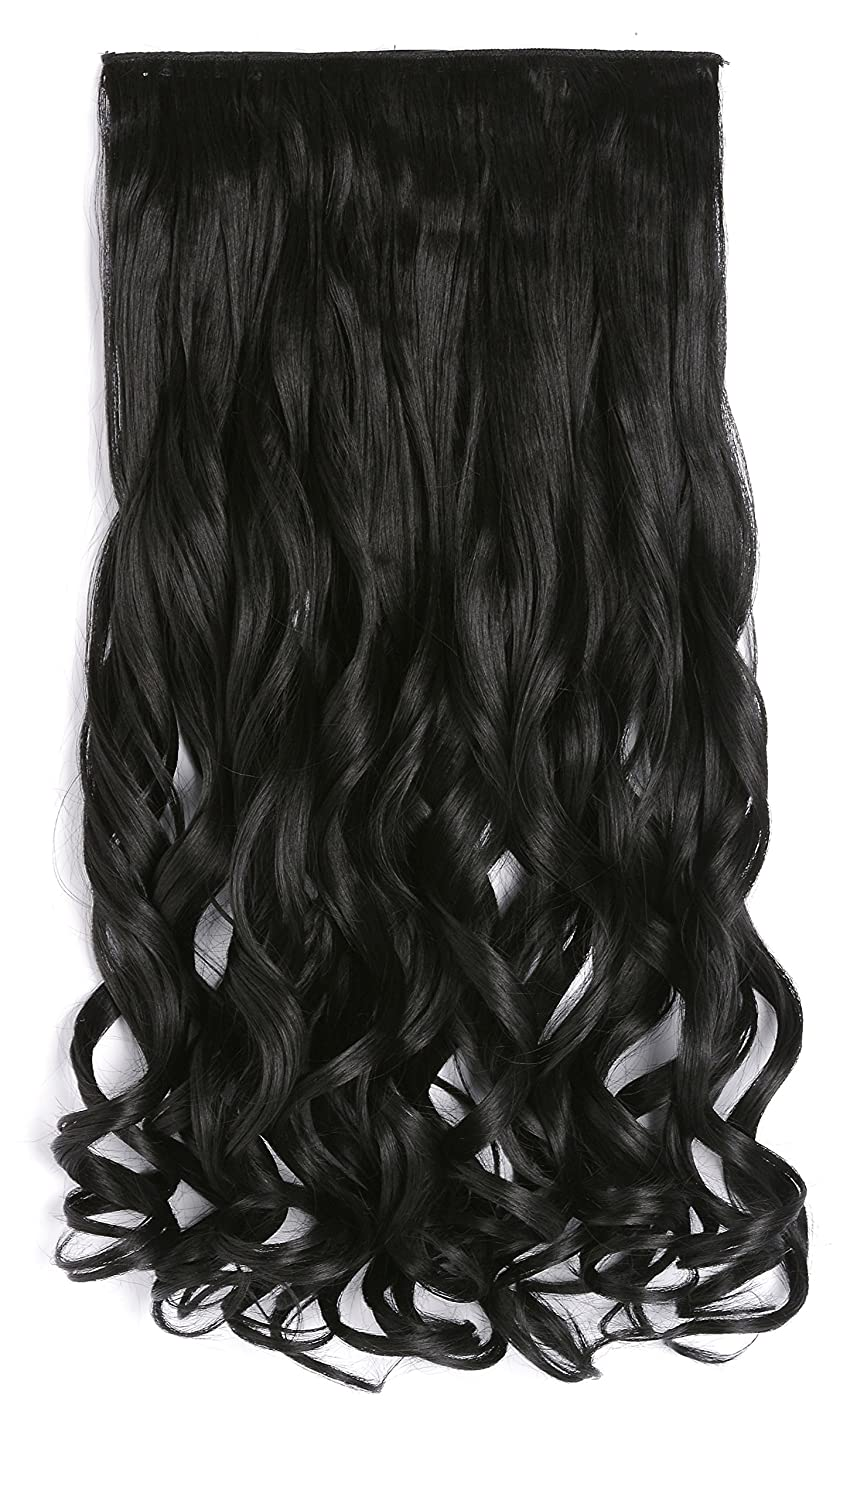 Amazon onedor 20 curly 34 full head synthetic hair amazon onedor 20 curly 34 full head synthetic hair extensions clip onin hairpieces 5 clips 140g 2 darkest brown beauty pmusecretfo Choice Image